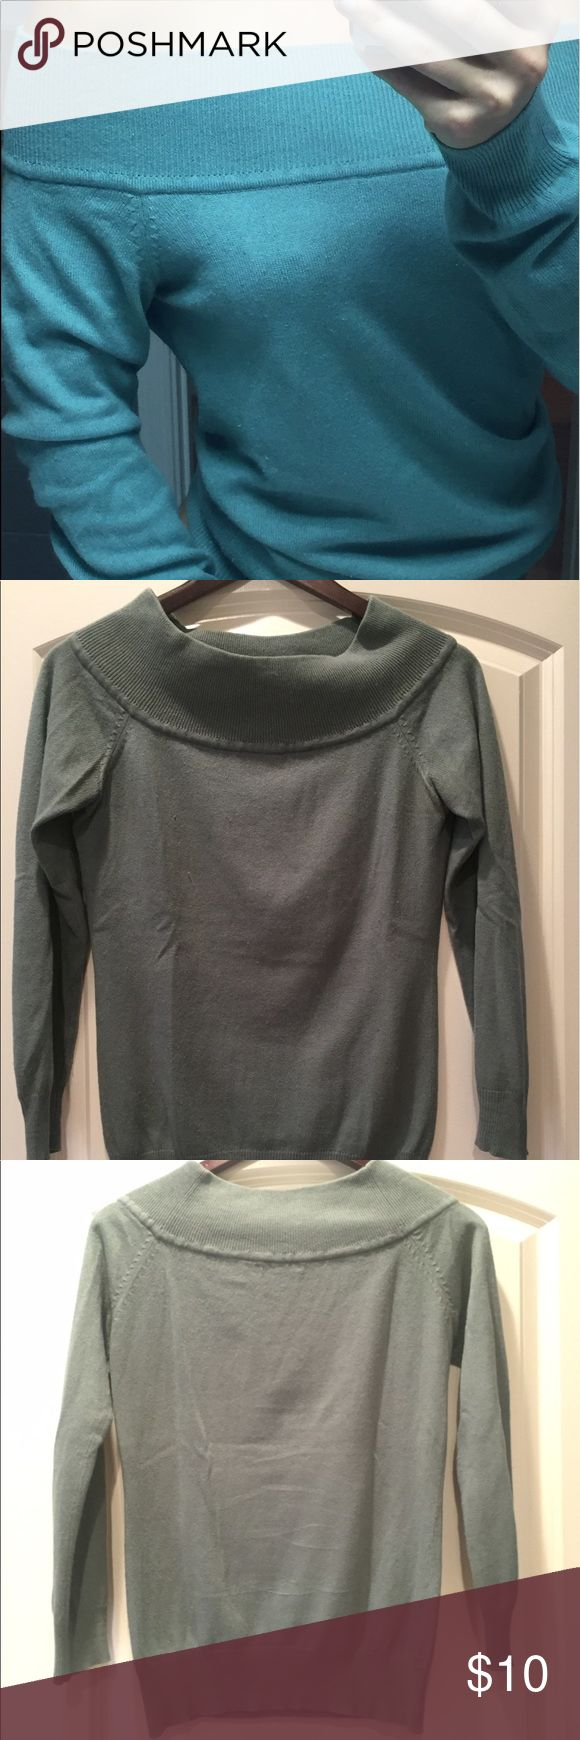 Silk and cashmere off the shoulder sweater. Goes great with high waisted jeans. Purchased off Victoria's Secret website last year. Looks better on than on hanger. Bottom band makes it easy to wear as cropped sweater or keep it at your hips. Moda International Sweaters